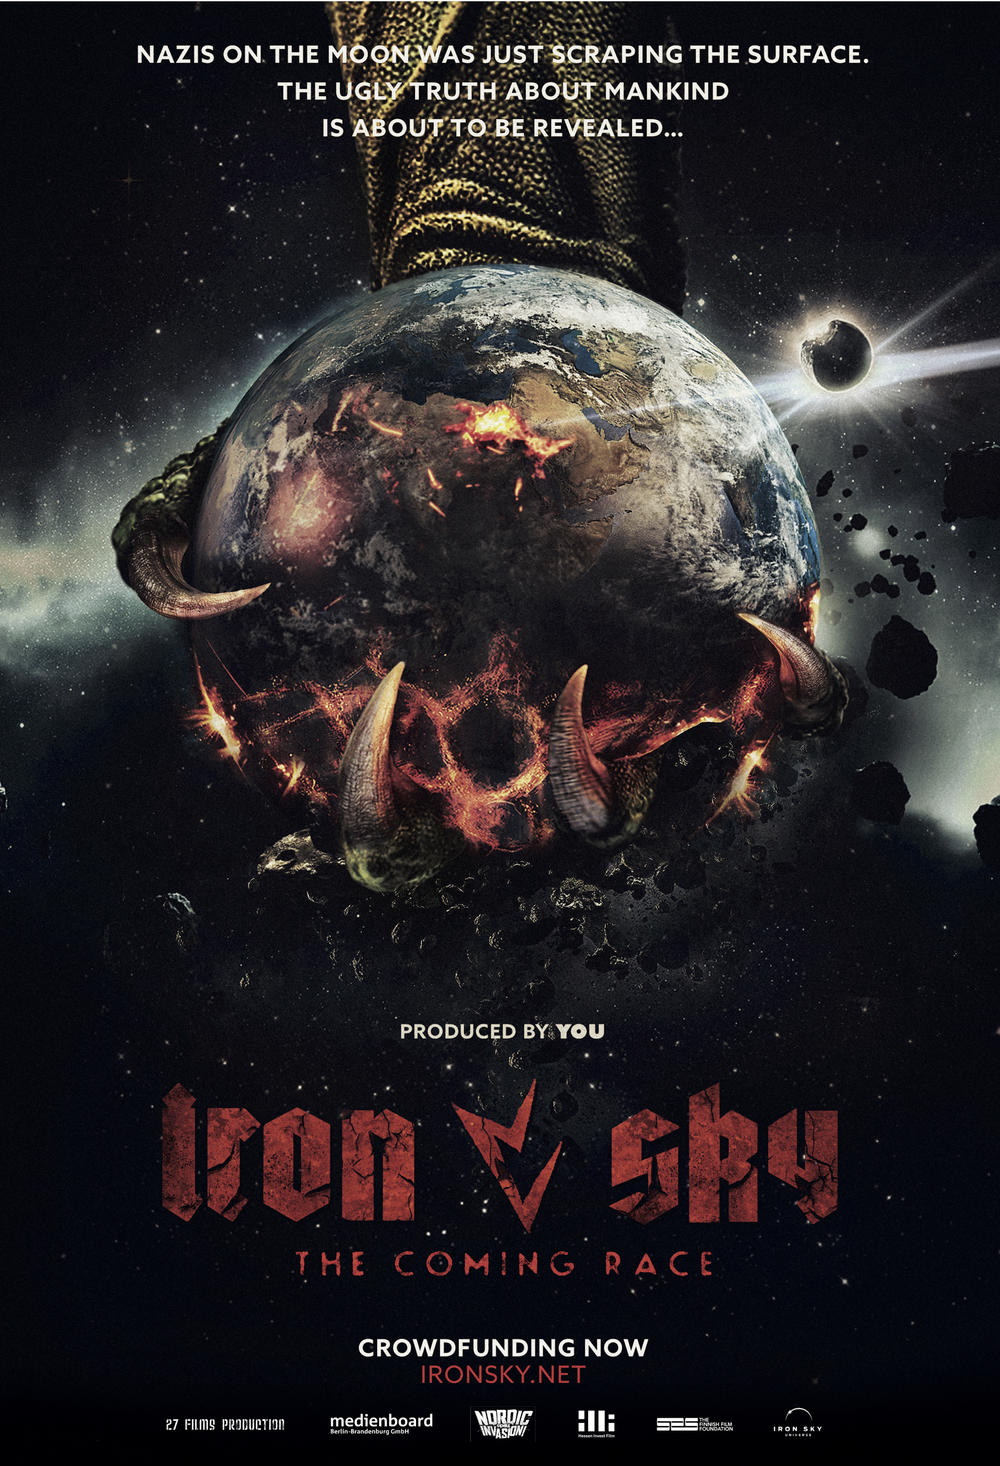 2016_Iron_Sky_-_The_Coming_Race_27_Films_Production.jpg